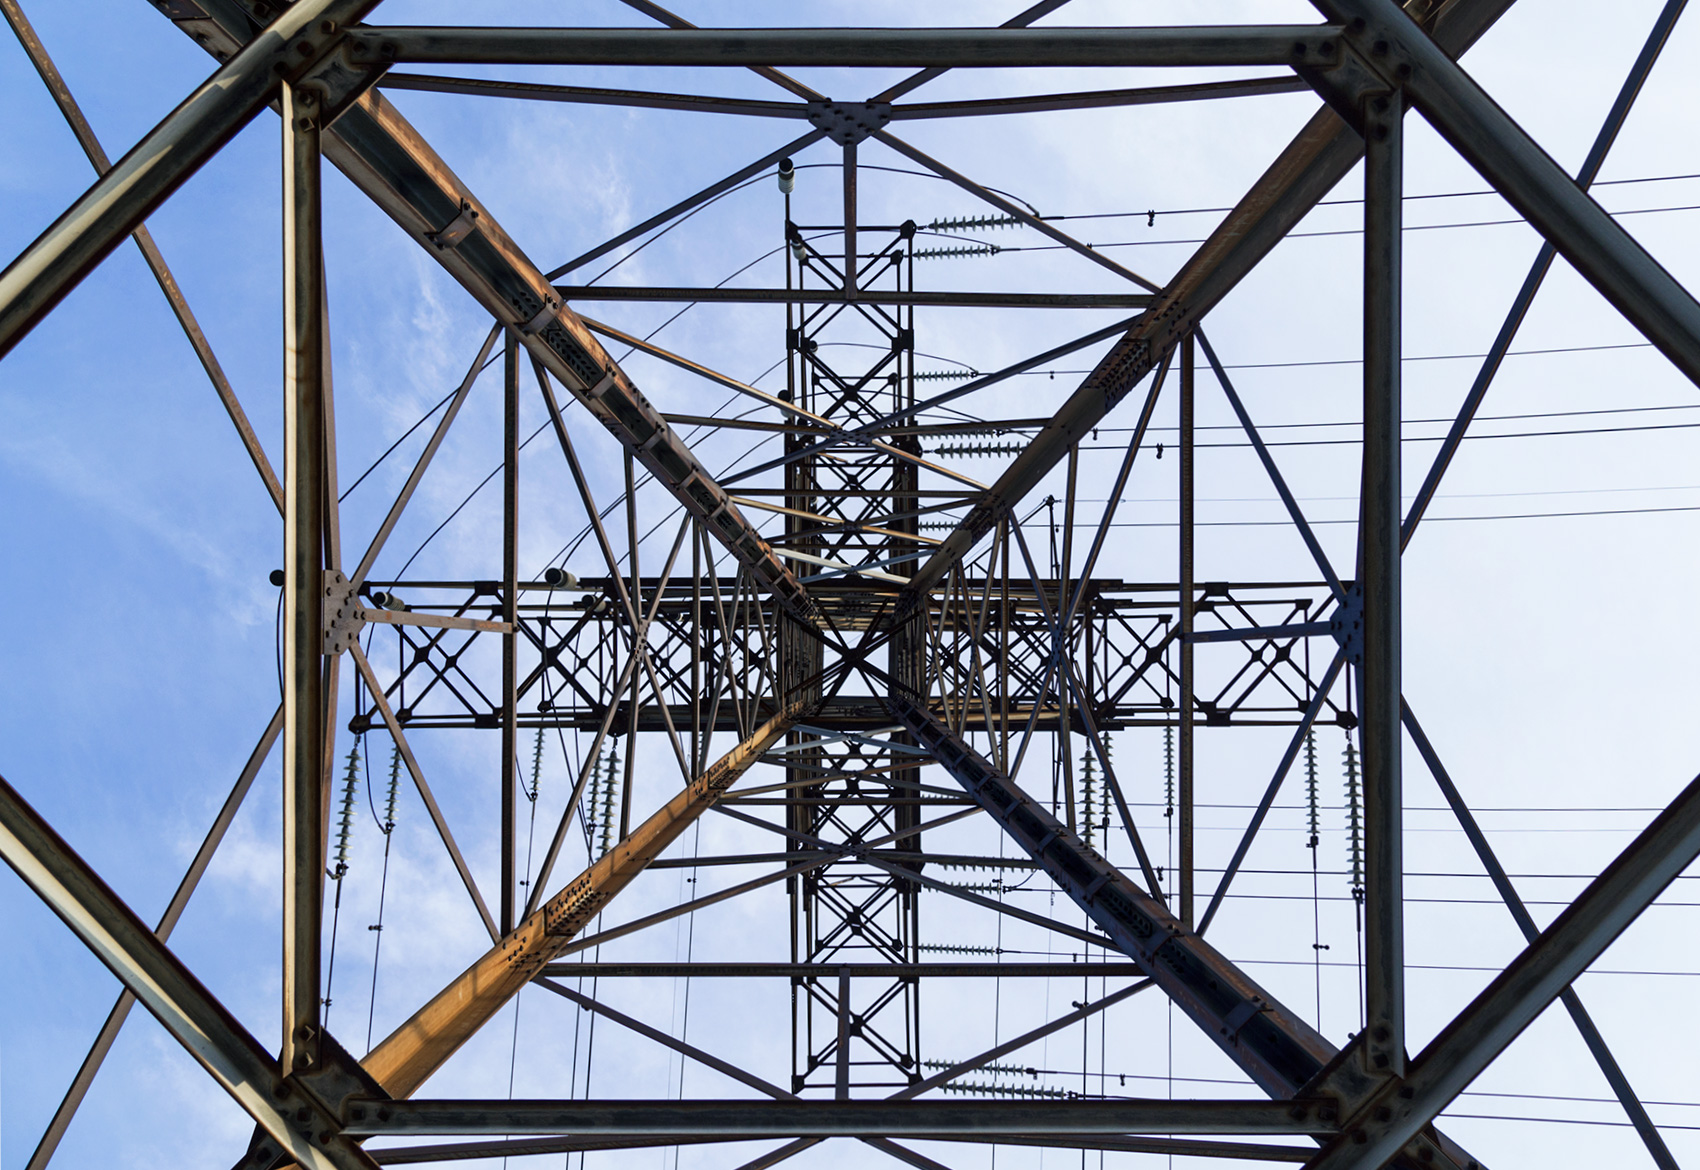 20160223. A transmission tower that changes the direction of pow